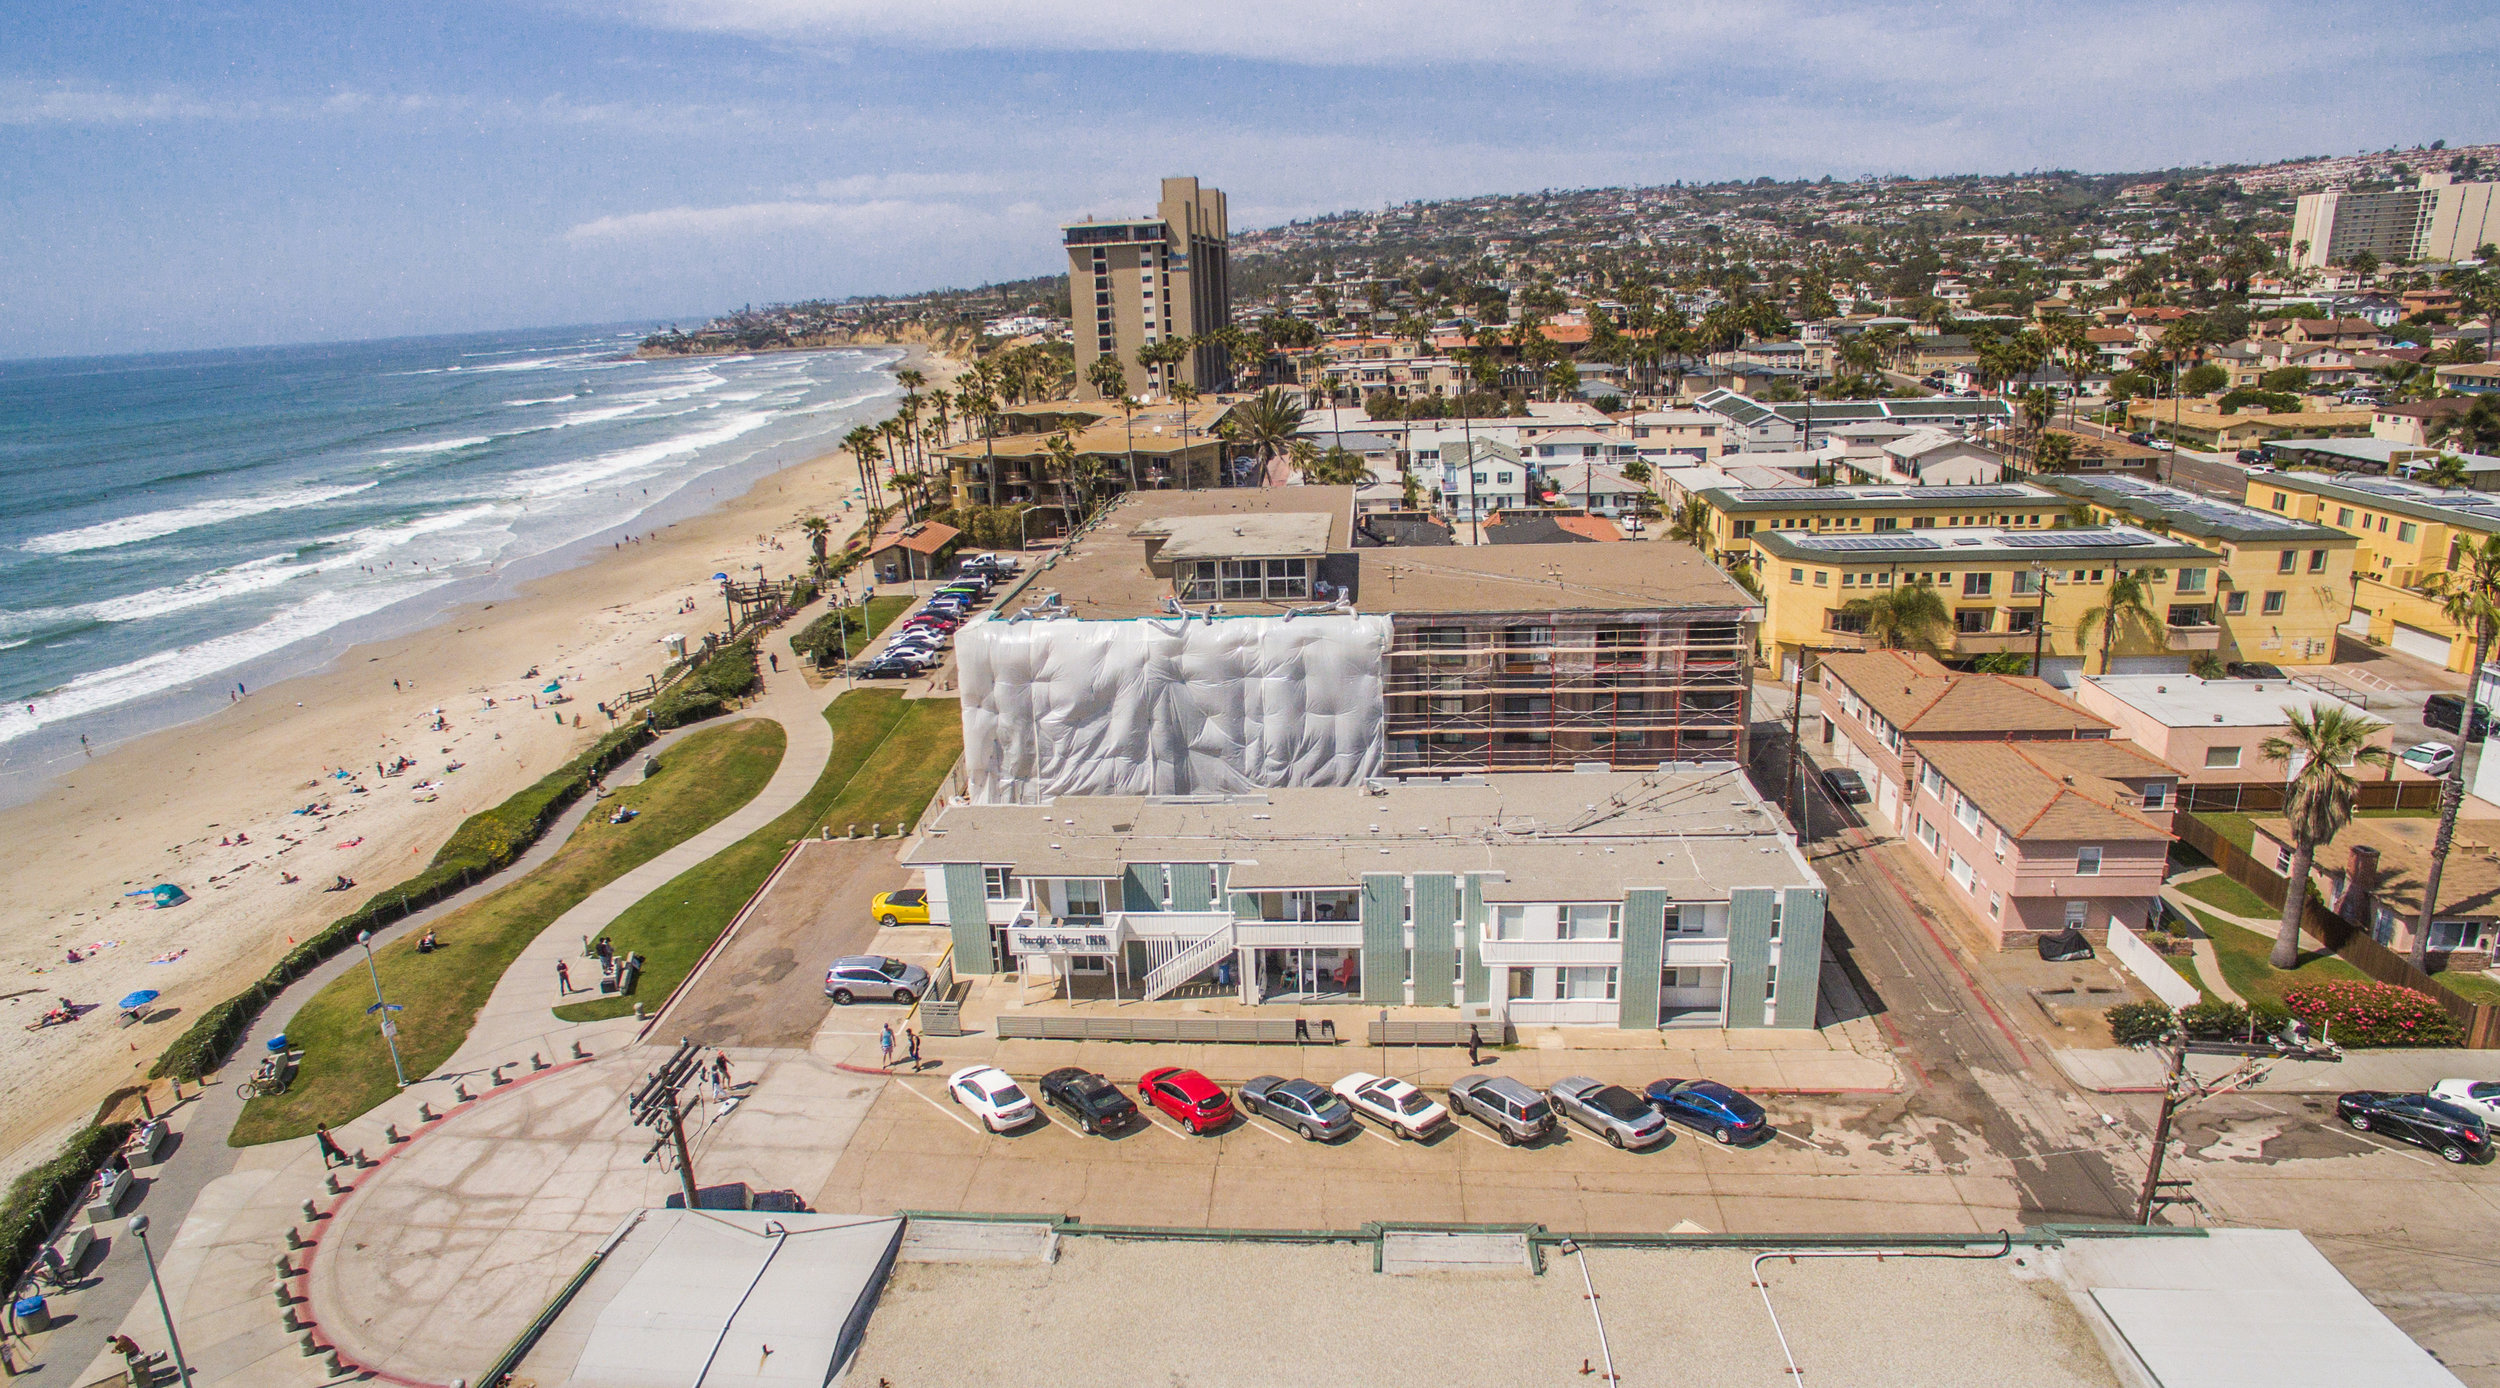 Commercial Real Estate - Beautifully display your commercial listing. We offer a variety of commercial real estate media services from HDR photography, HD video, aerial drone, and custom animations.